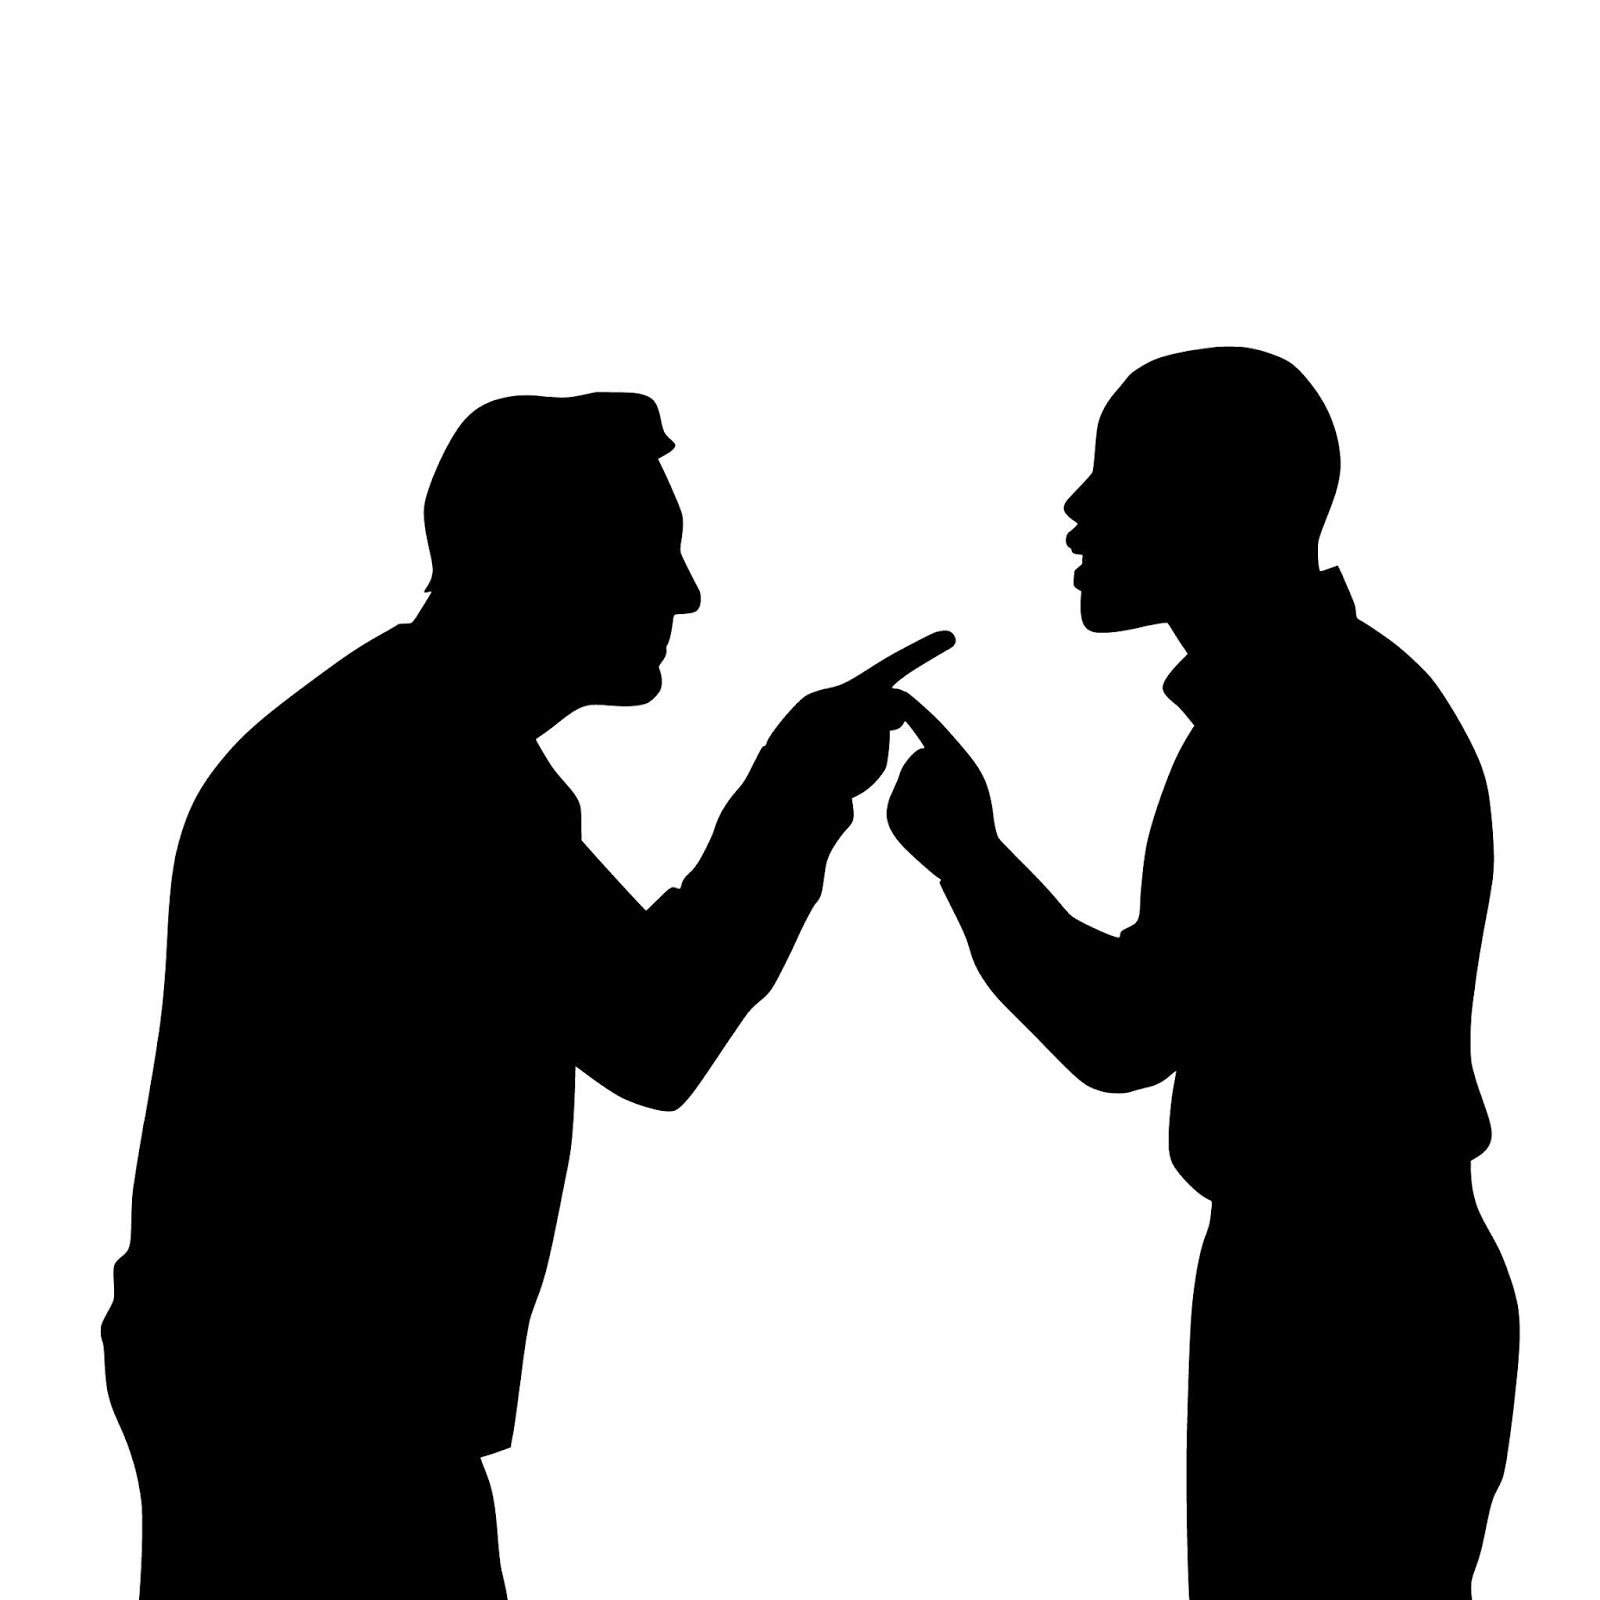 argument, angry, silhouette, boss, client, dispute, dissatisfied, employees, stressed, talking, worker, business, complaint, mad, serious, shouting, manager, gesturing, accuse, misunderstanding